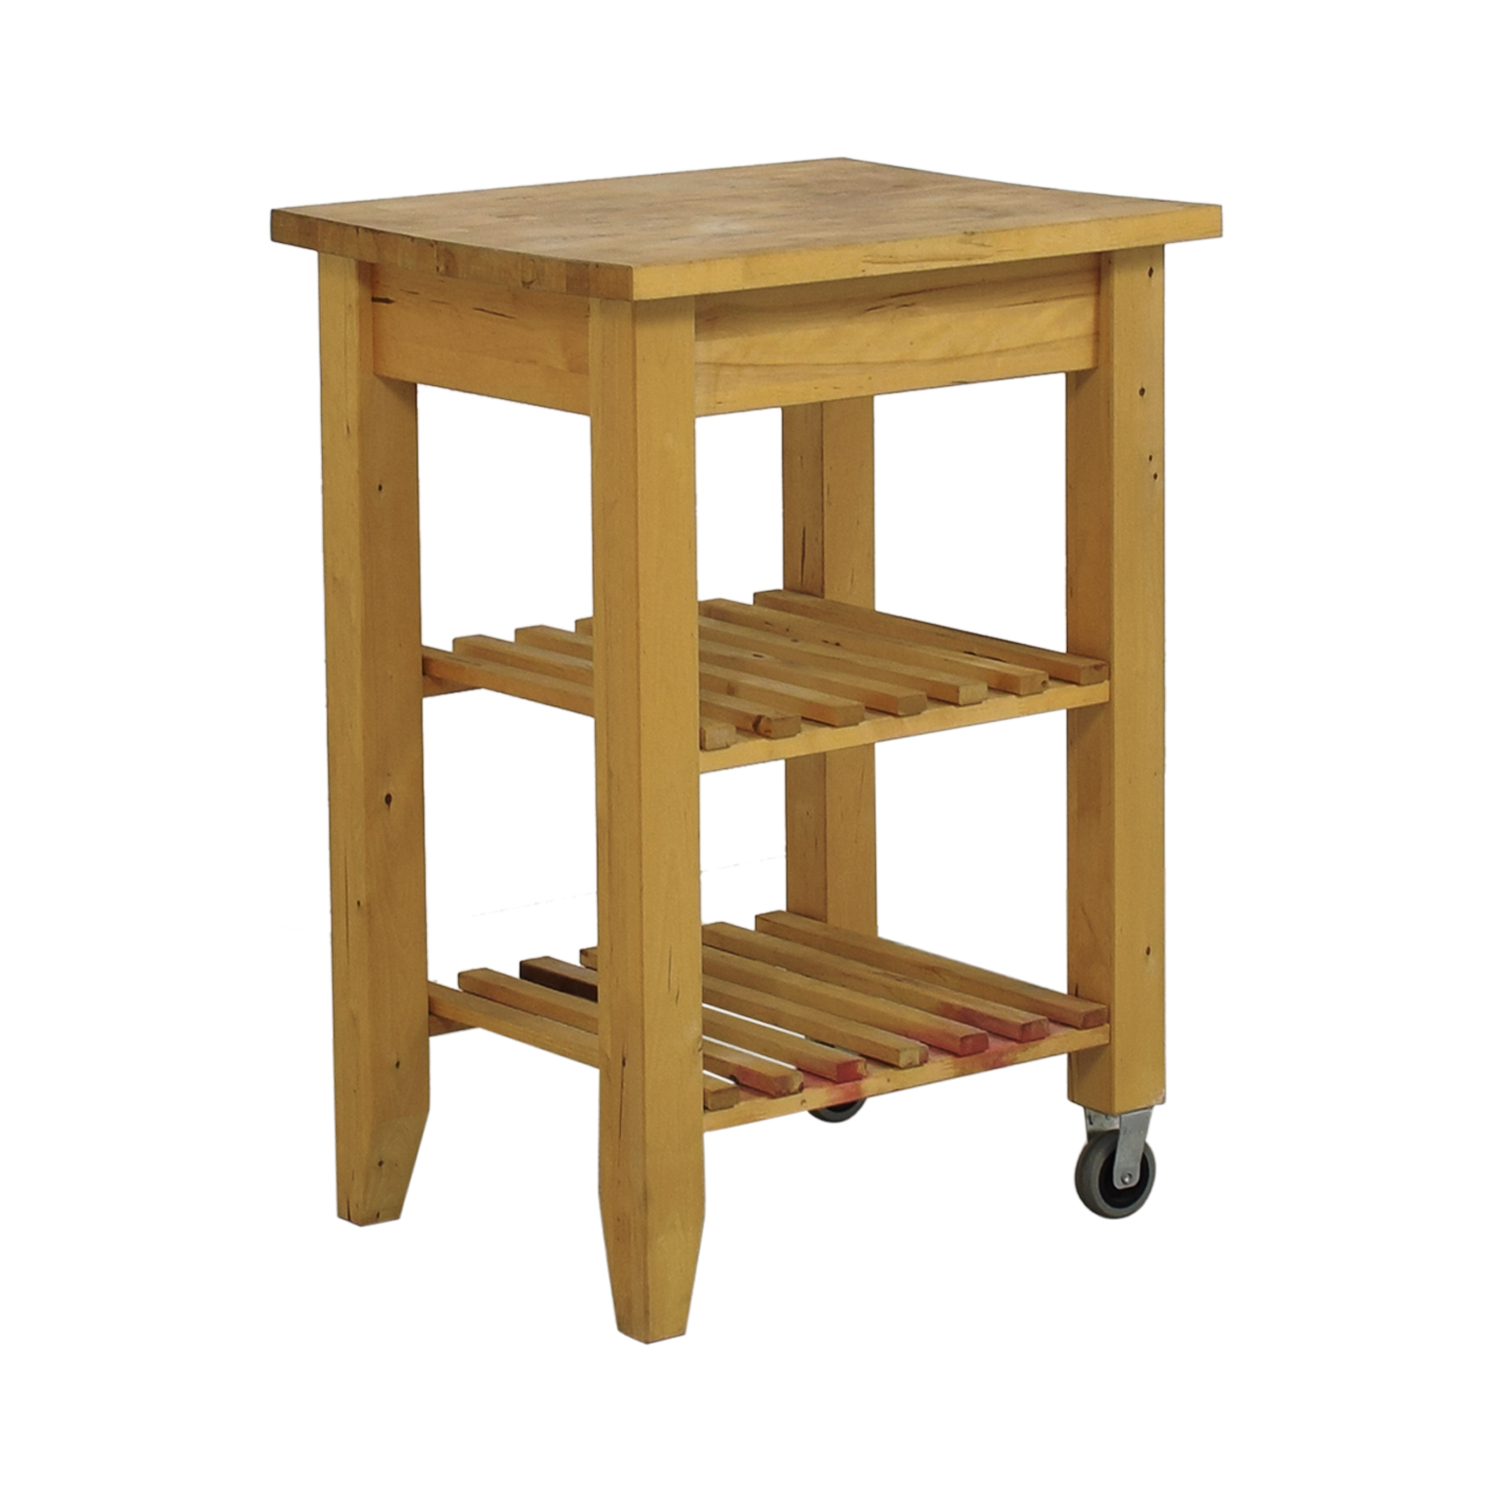 Ikea Küchen Block 66% Off - Ikea Ikea Butcher Block Kitchen Cart With